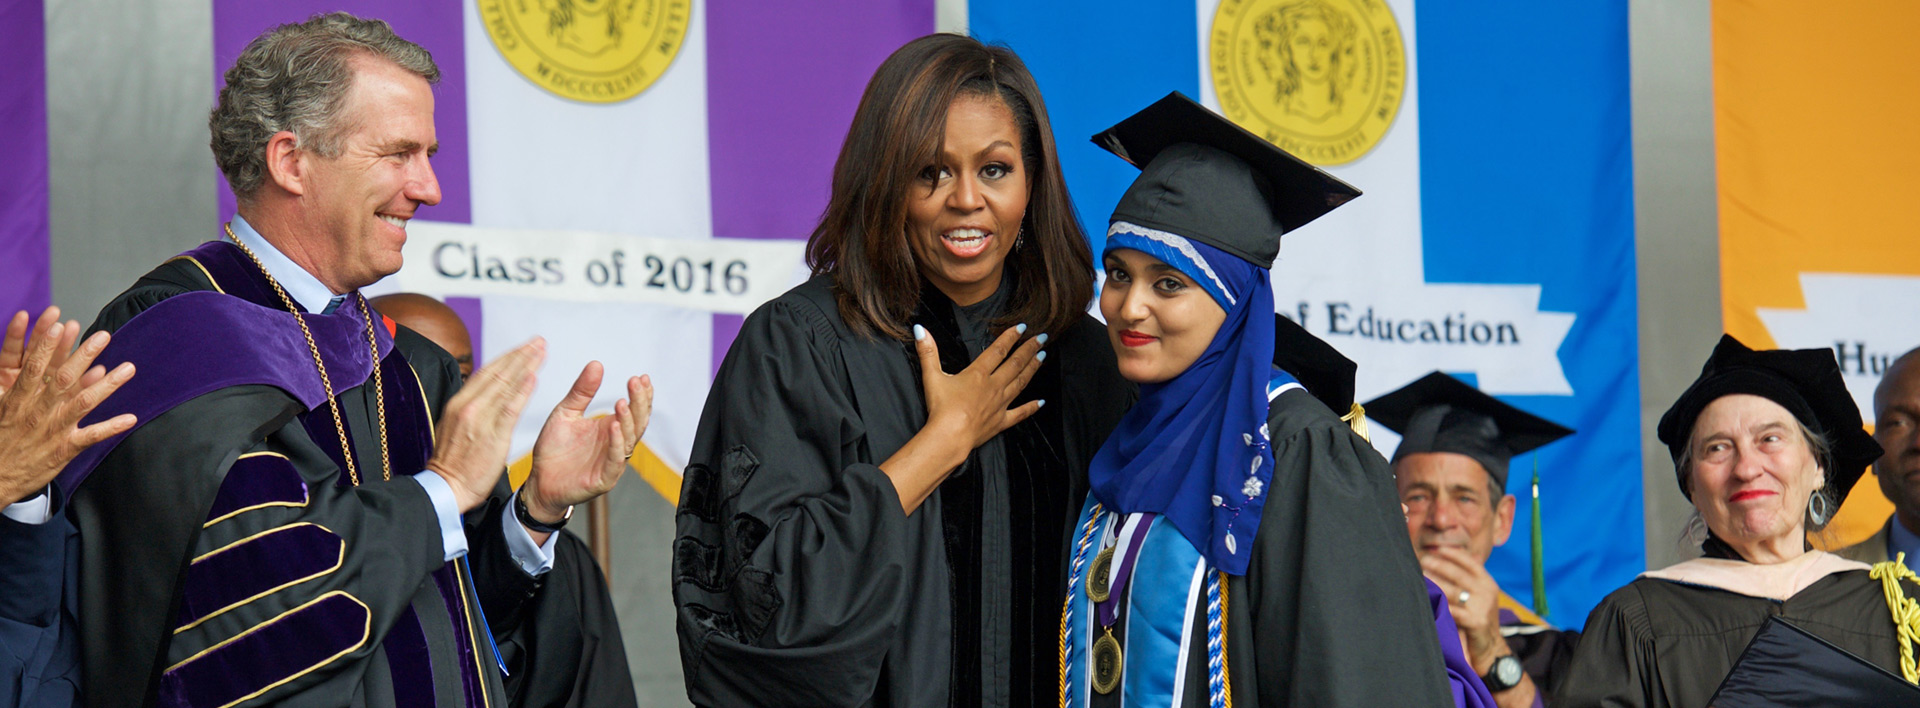 CUNY Chancellor James B. Milliken, First Lady Michelle Obama and Salutatorian Orubba Almansouri at the 2016 CCNY graduation